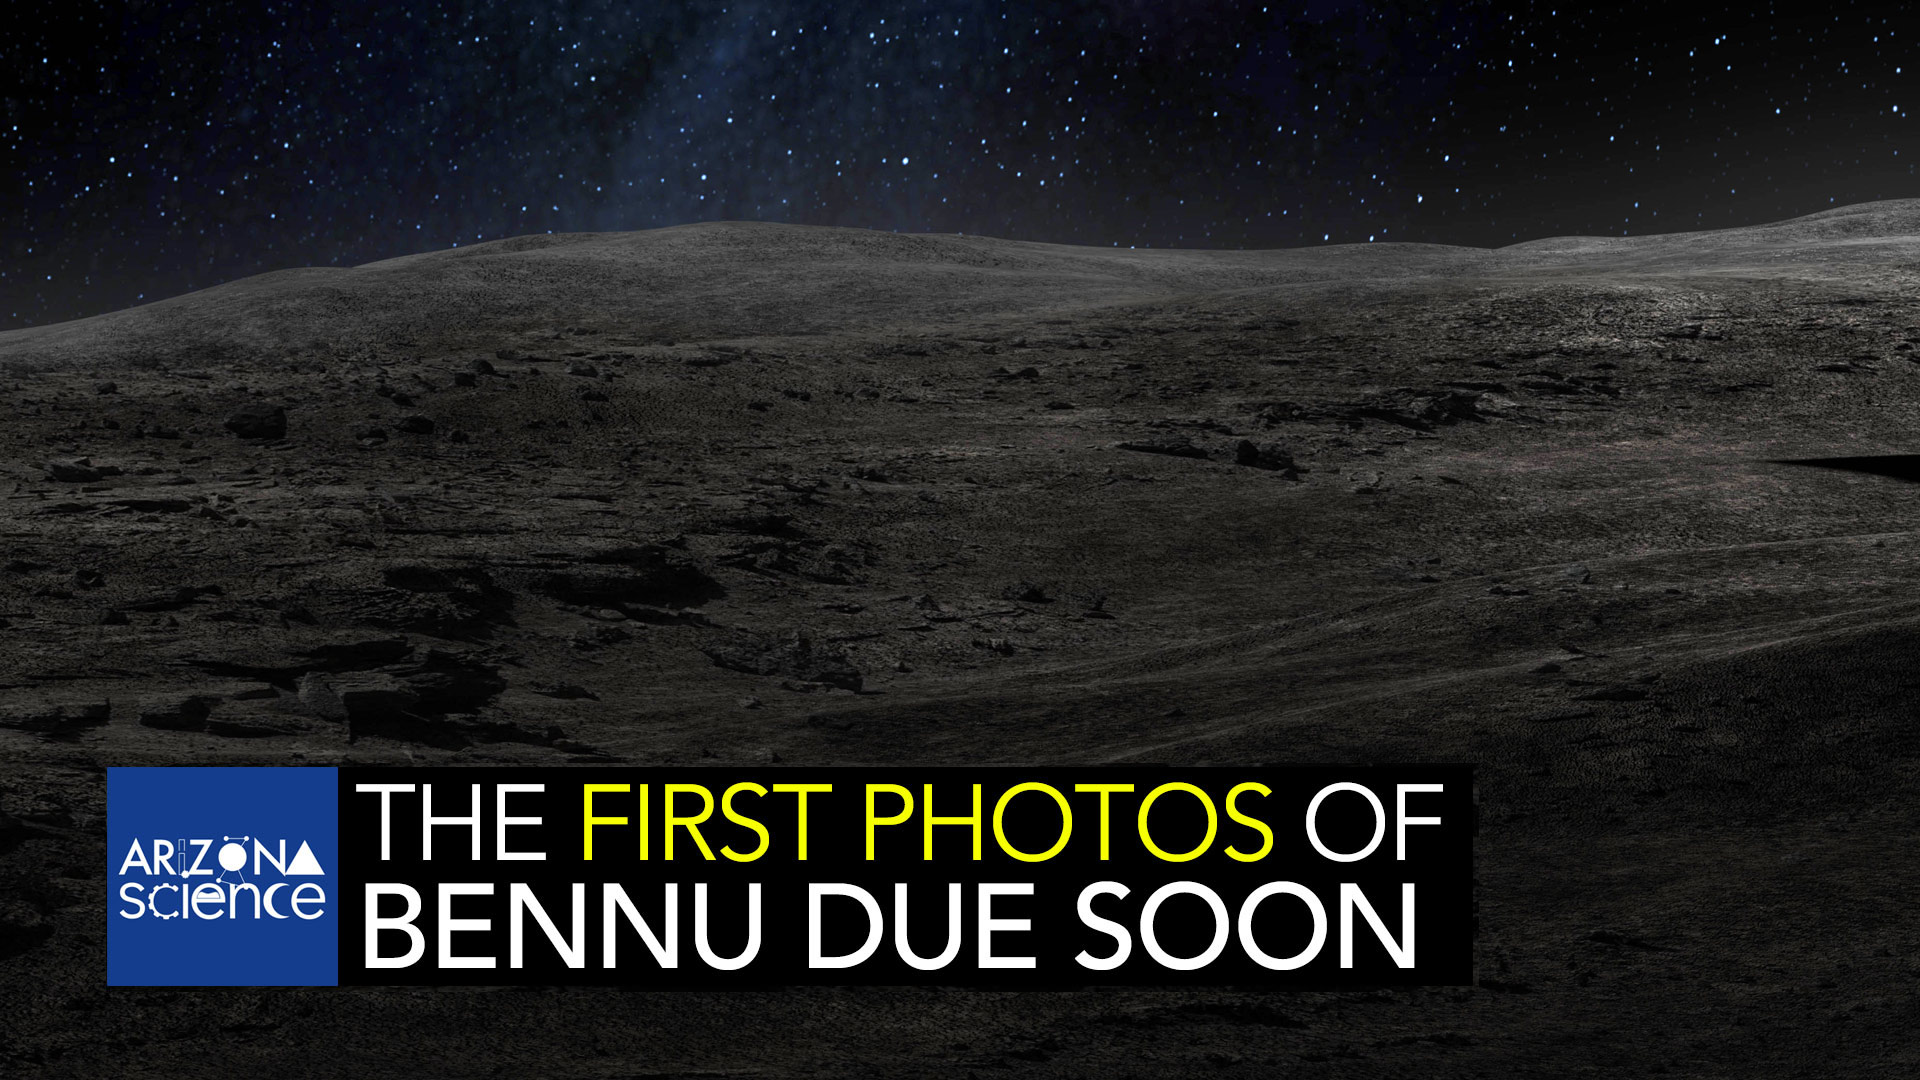 The OSIRIS-REx spacecraft will begin sending photos of the asteroid Bennu back to earth beginning in August of 2018.